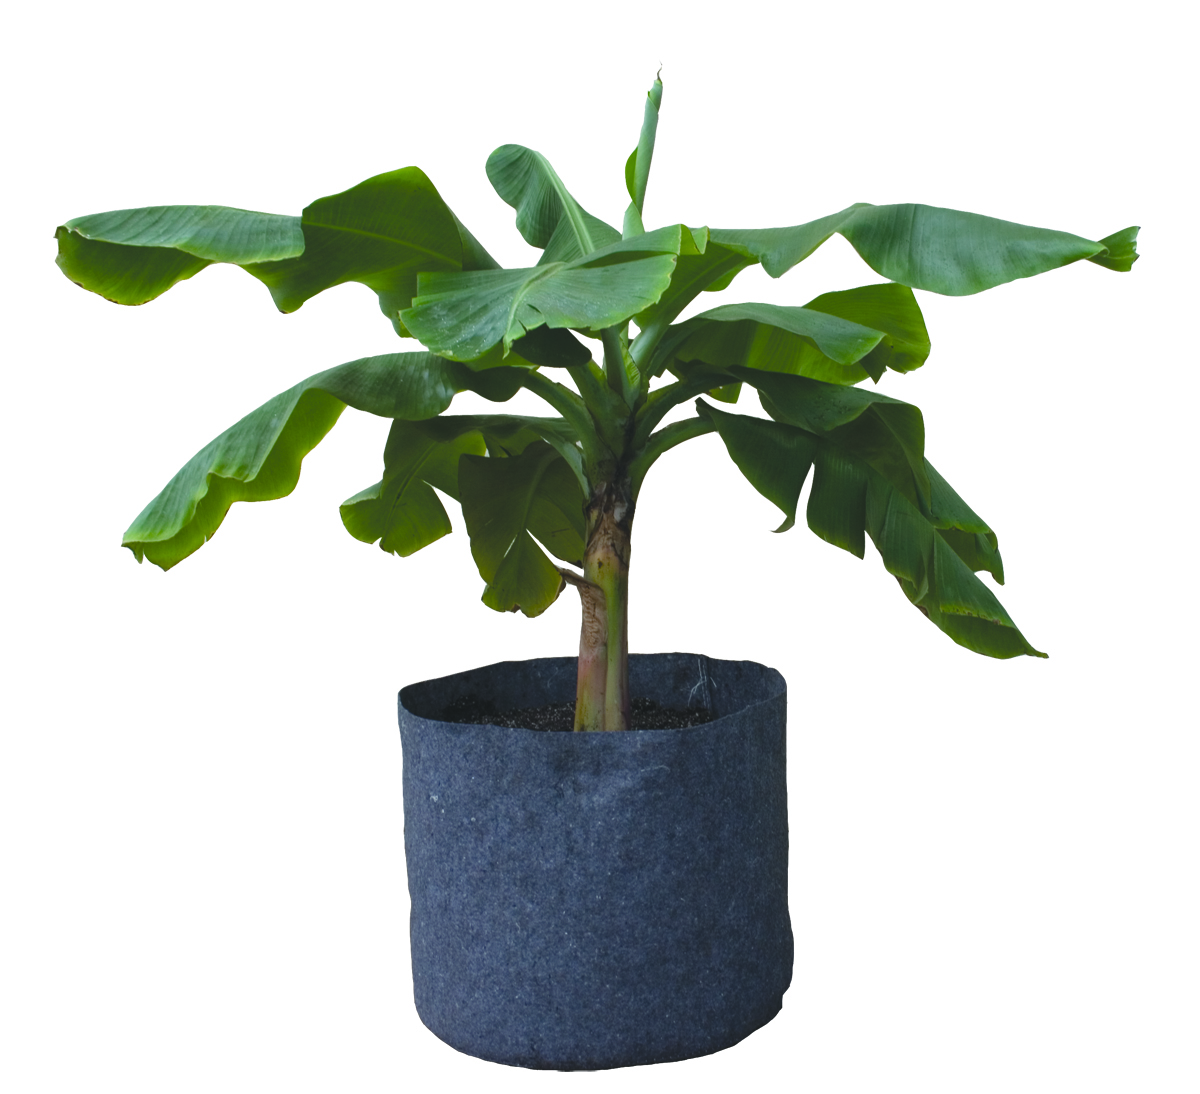 Root Pot with plant